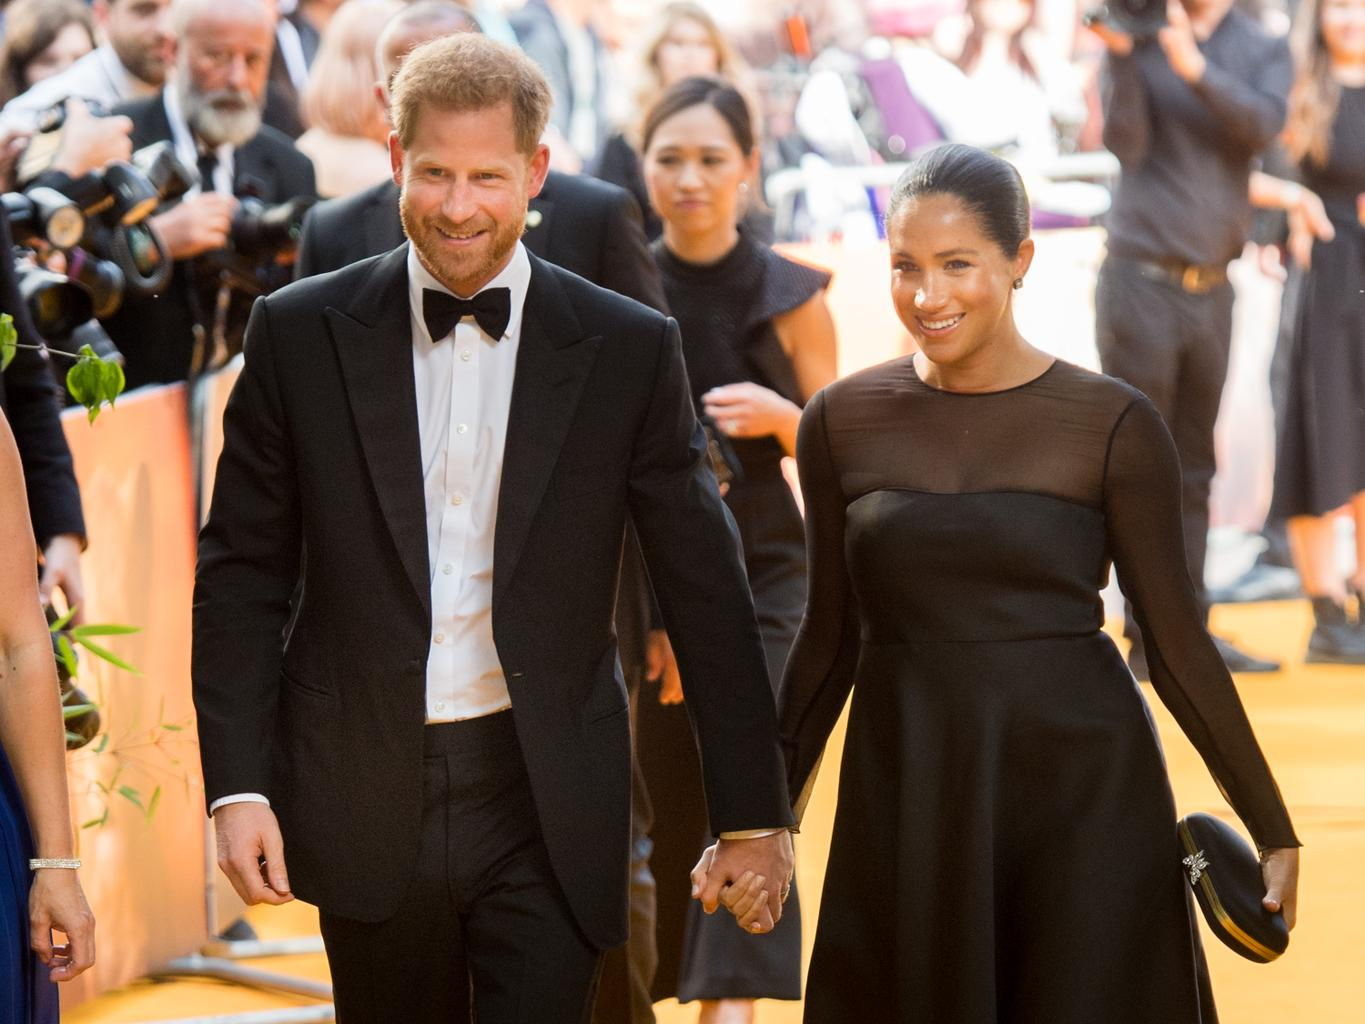 Prince Harry & Meghan Markle Just Unfollowed Everyone on Instagram